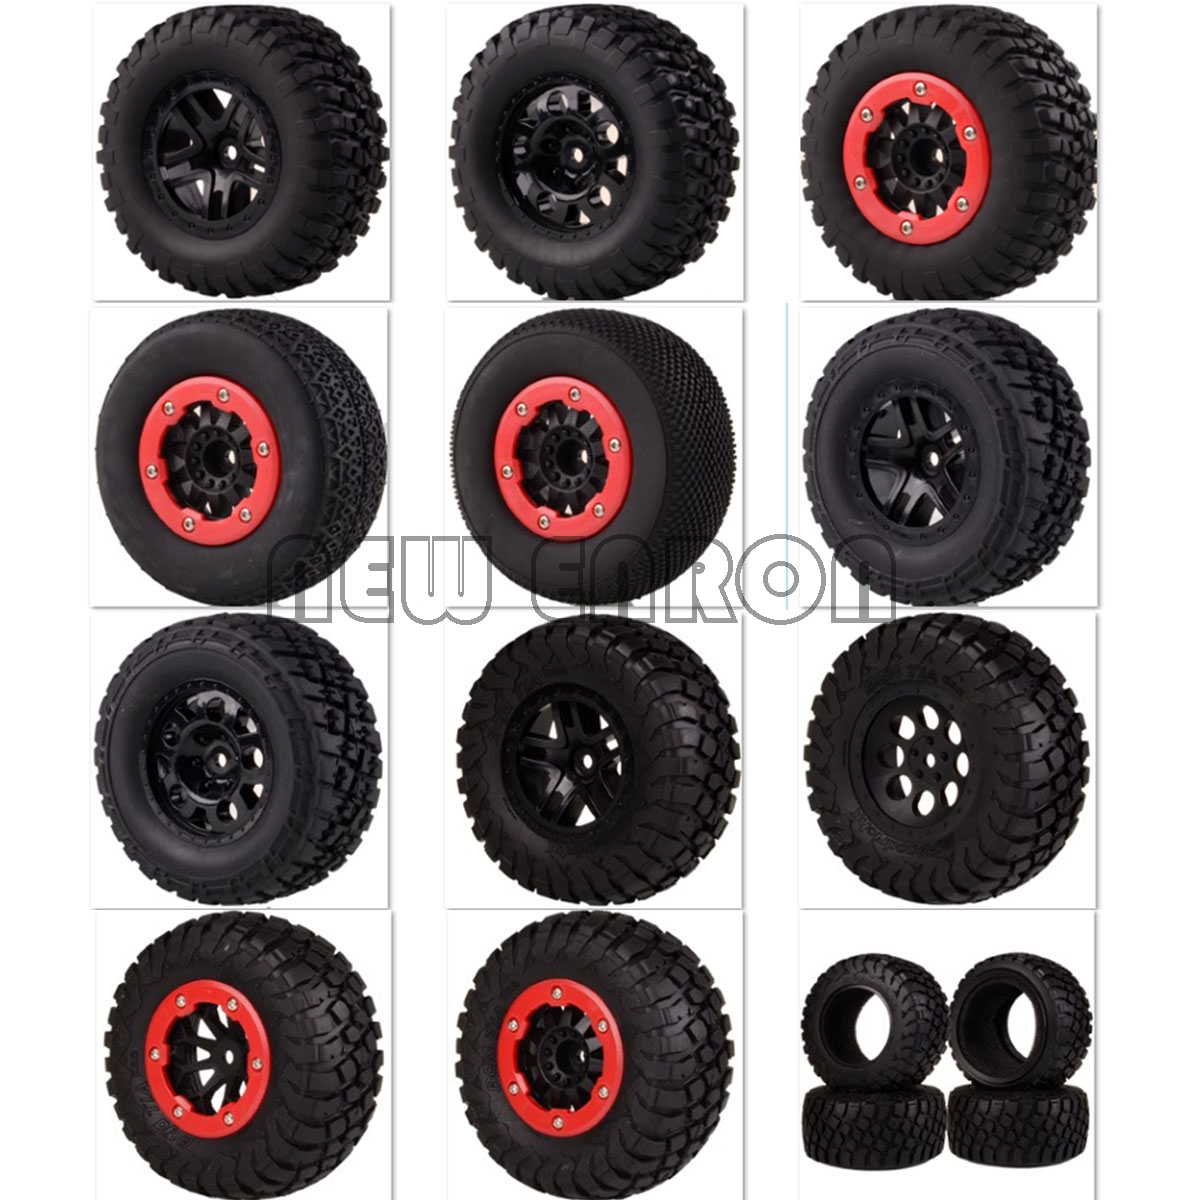 NEW ENRON 4PCS Bead-Lock Short Course Truck Tire Tyre & Wheel Rim Hub 12MM HEX FOR Fit 1:10 1/10 Traxxas Slash 4x4 VKAR 10SC HPI